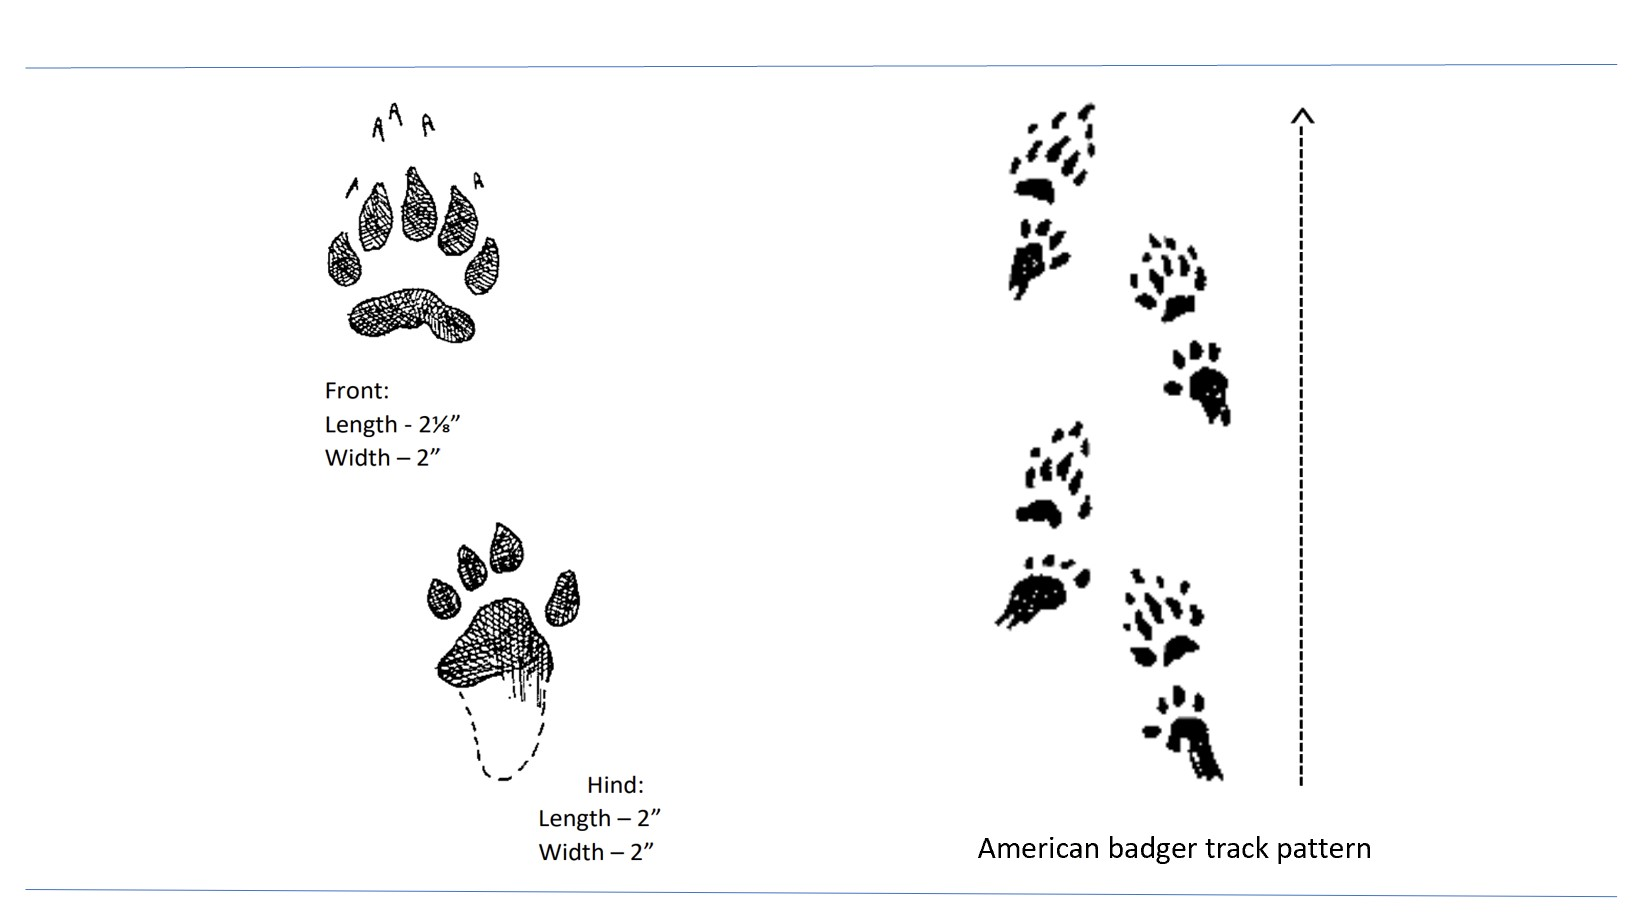 Illustrated tracks of the American badger.